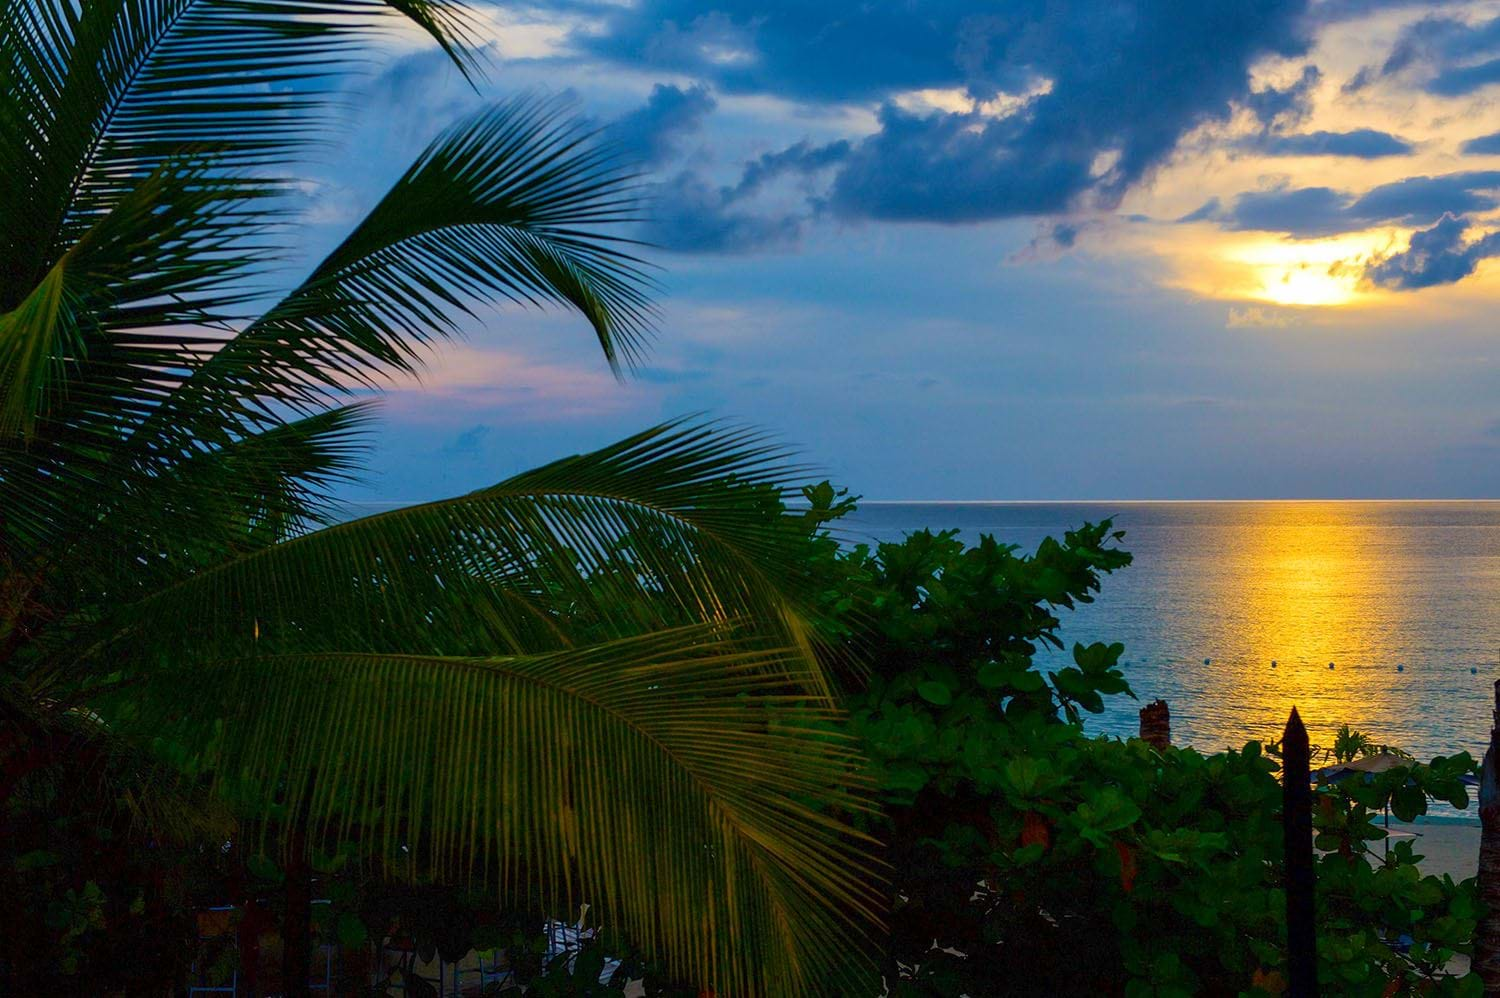 Jamaica , Enjoy a laid-back atmosphere complimented with some of the most beautiful landscapes